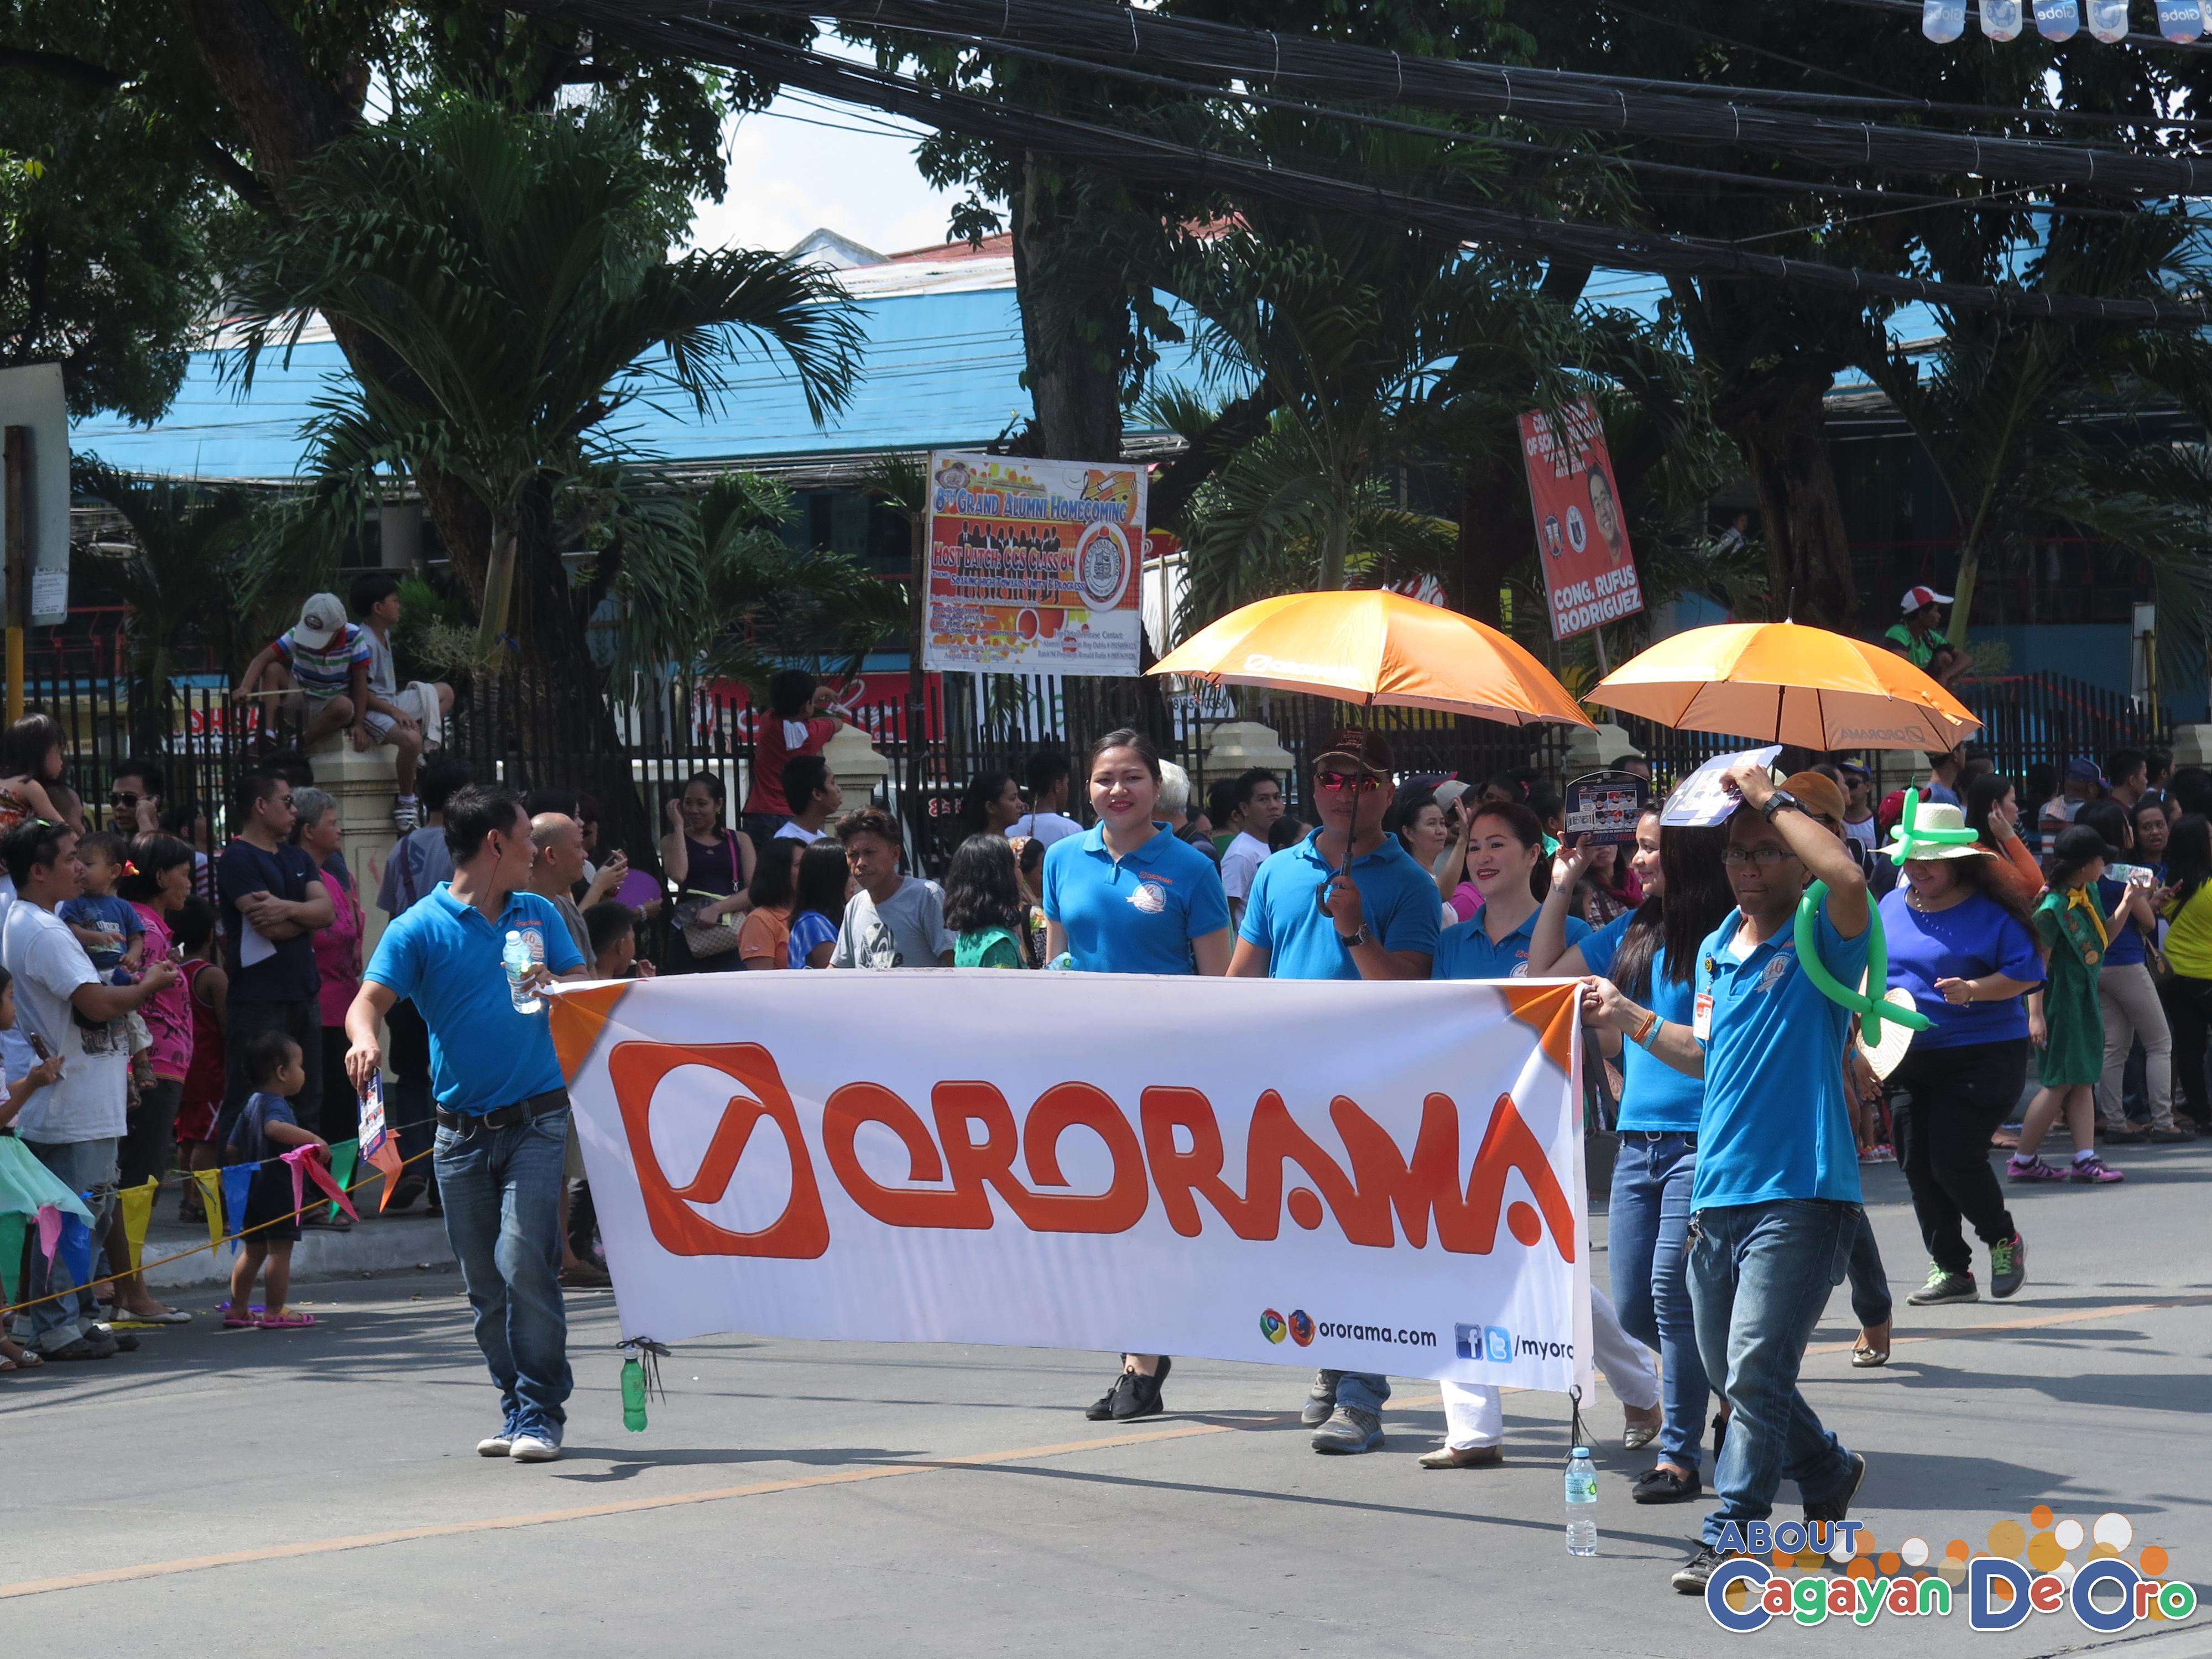 Ororama at Cagayan de Oro The Higalas Parade of Floats and Icons 2015